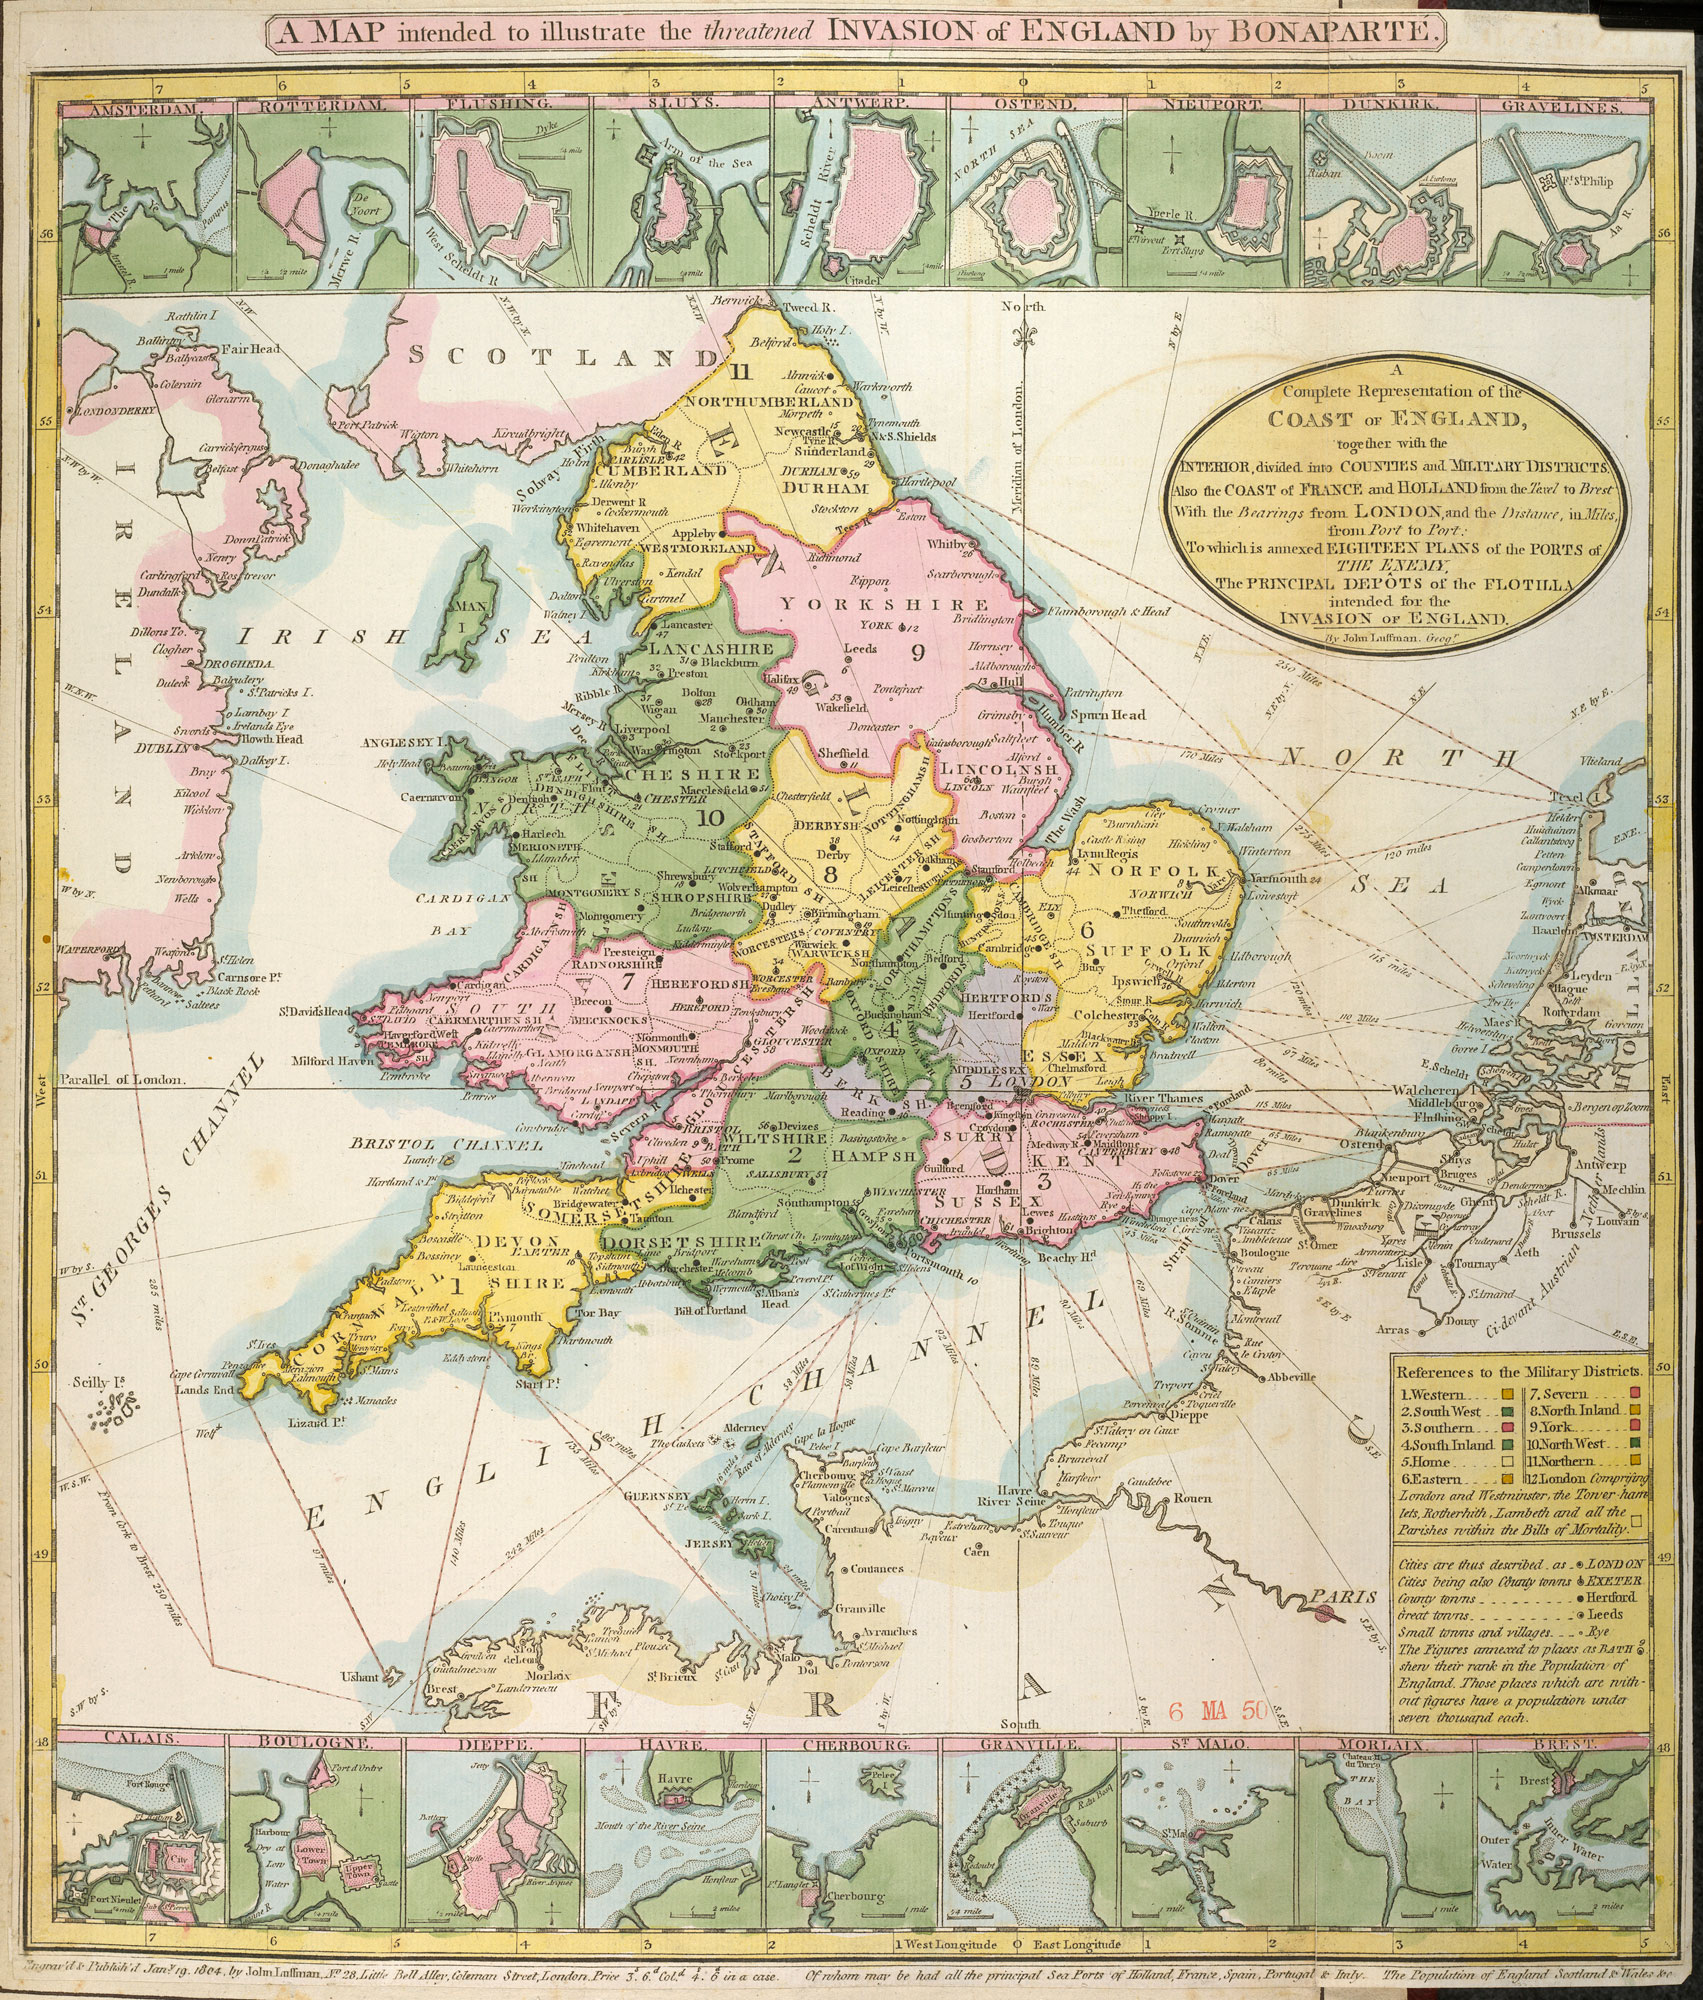 The Impact of the Napoleonic Wars in Britain